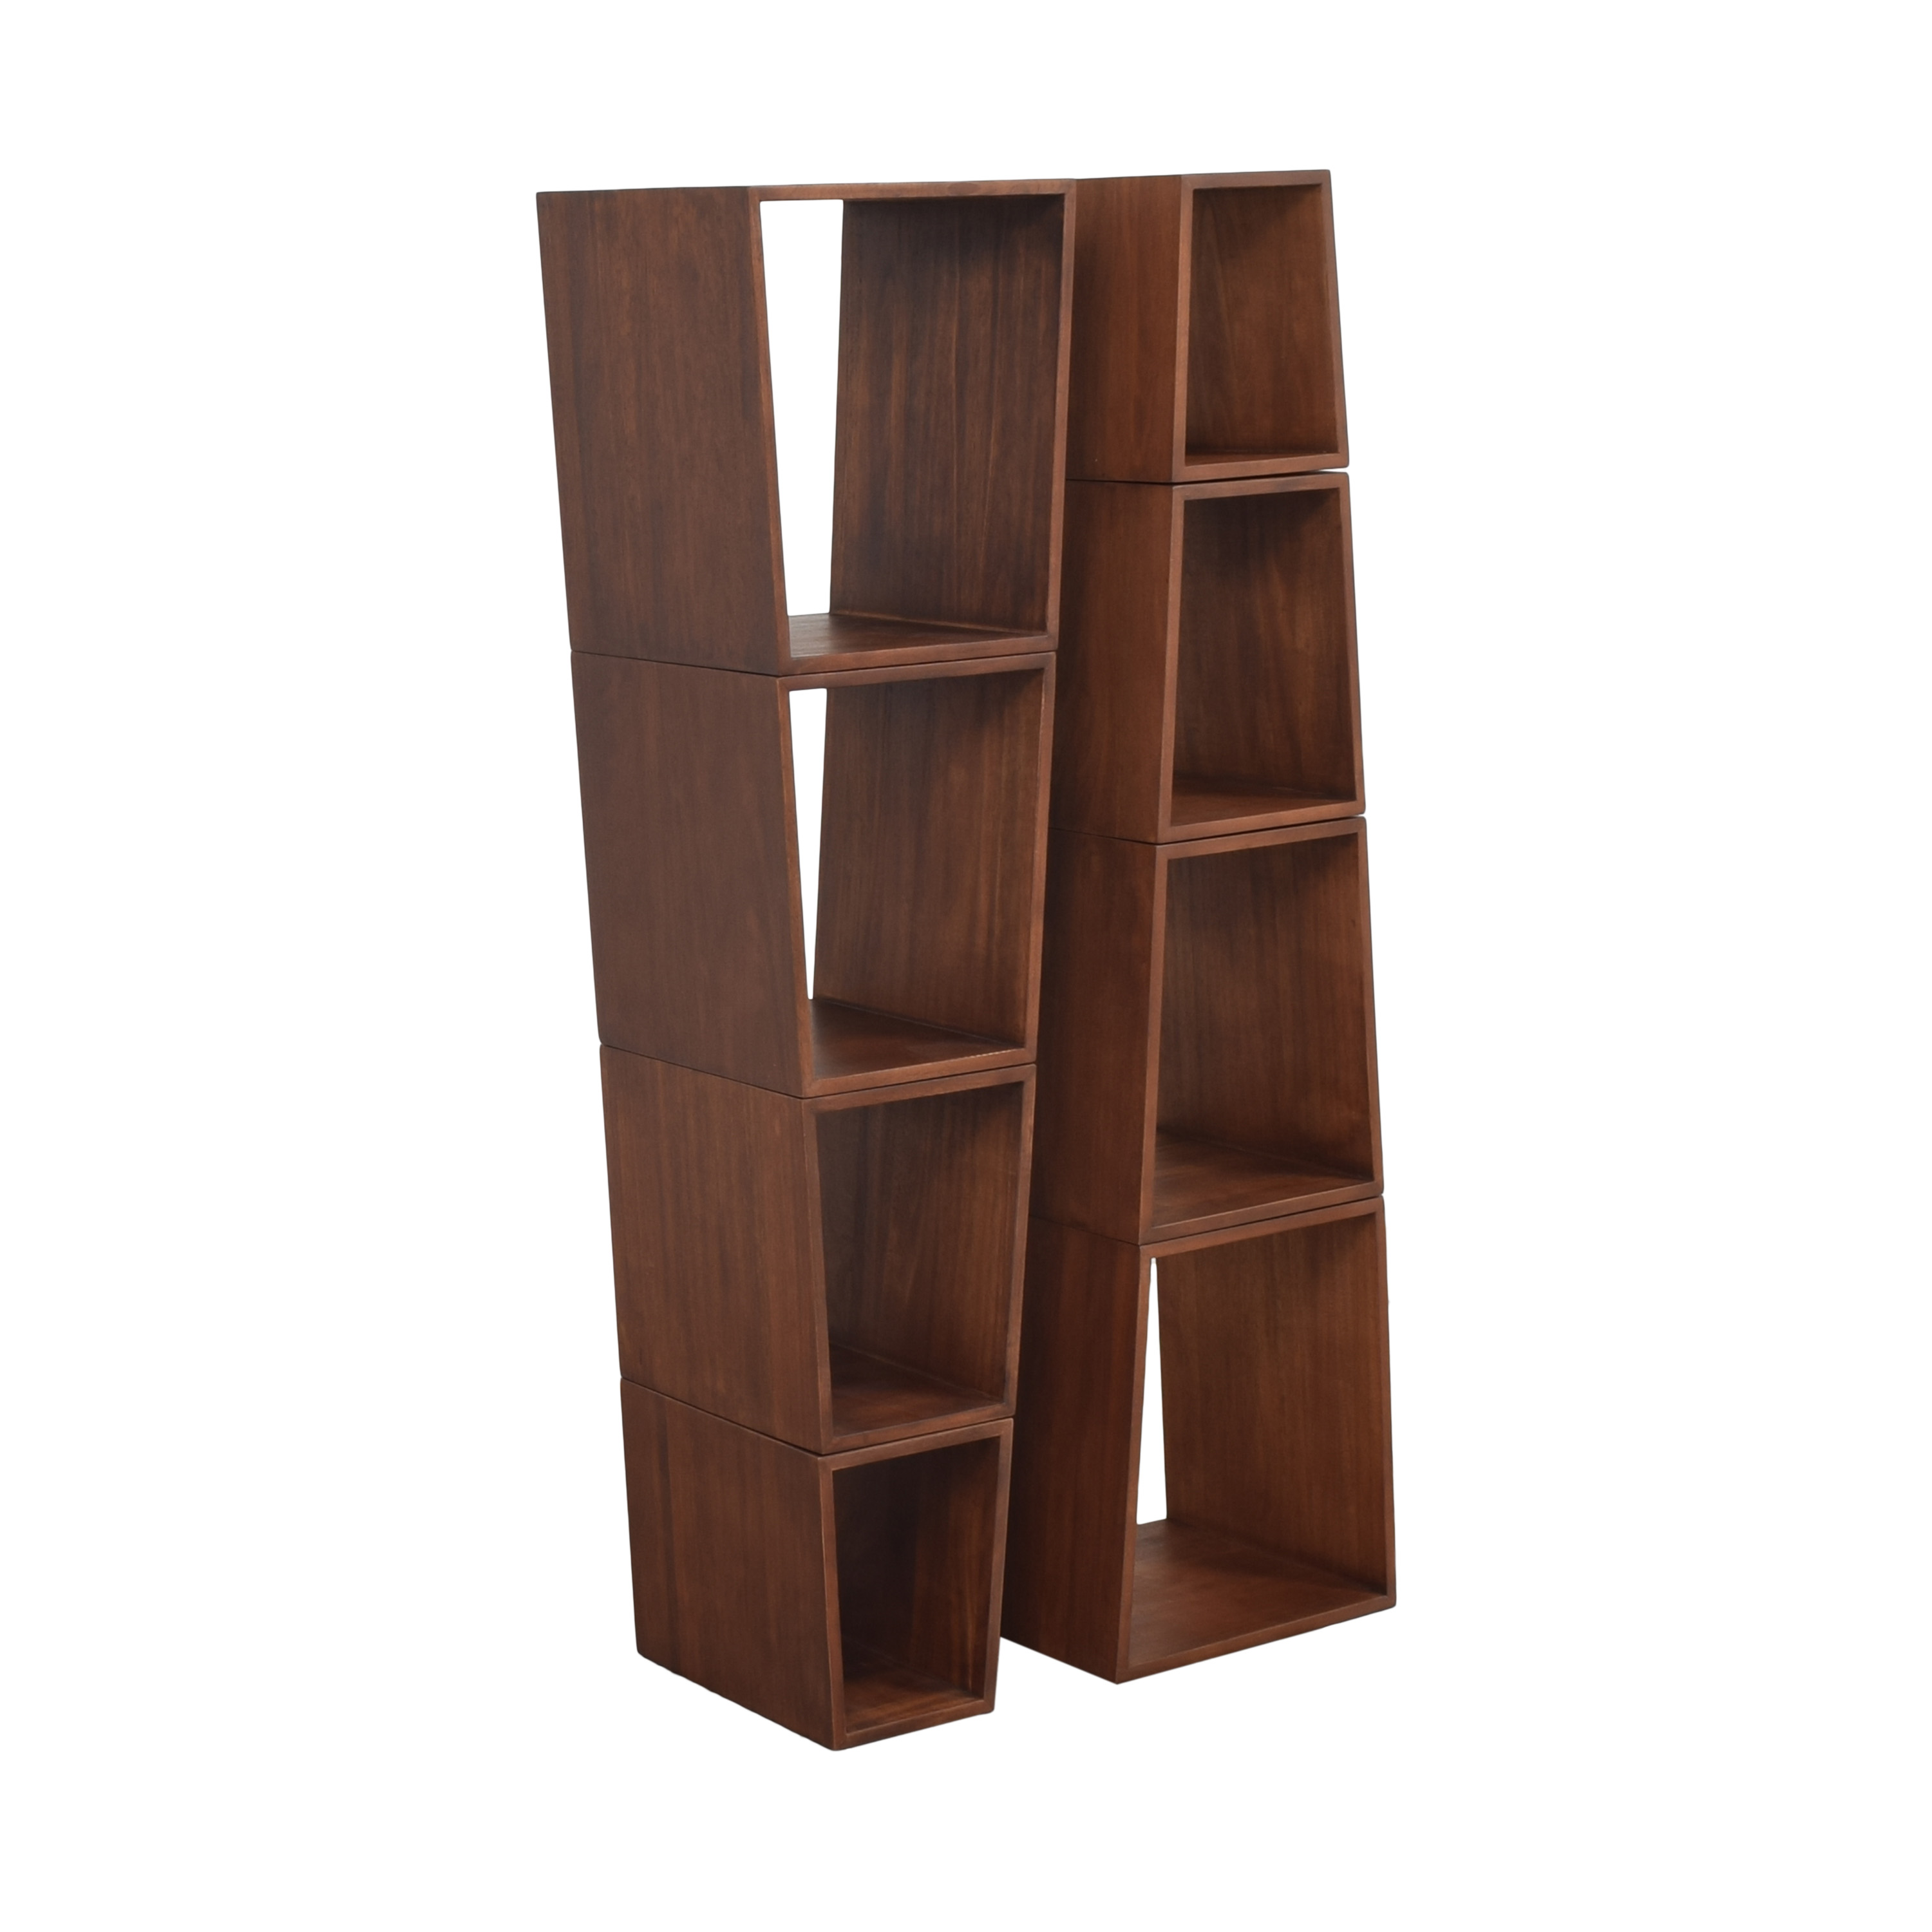 The Company Store Pyramid Shelf System / Bookcases & Shelving